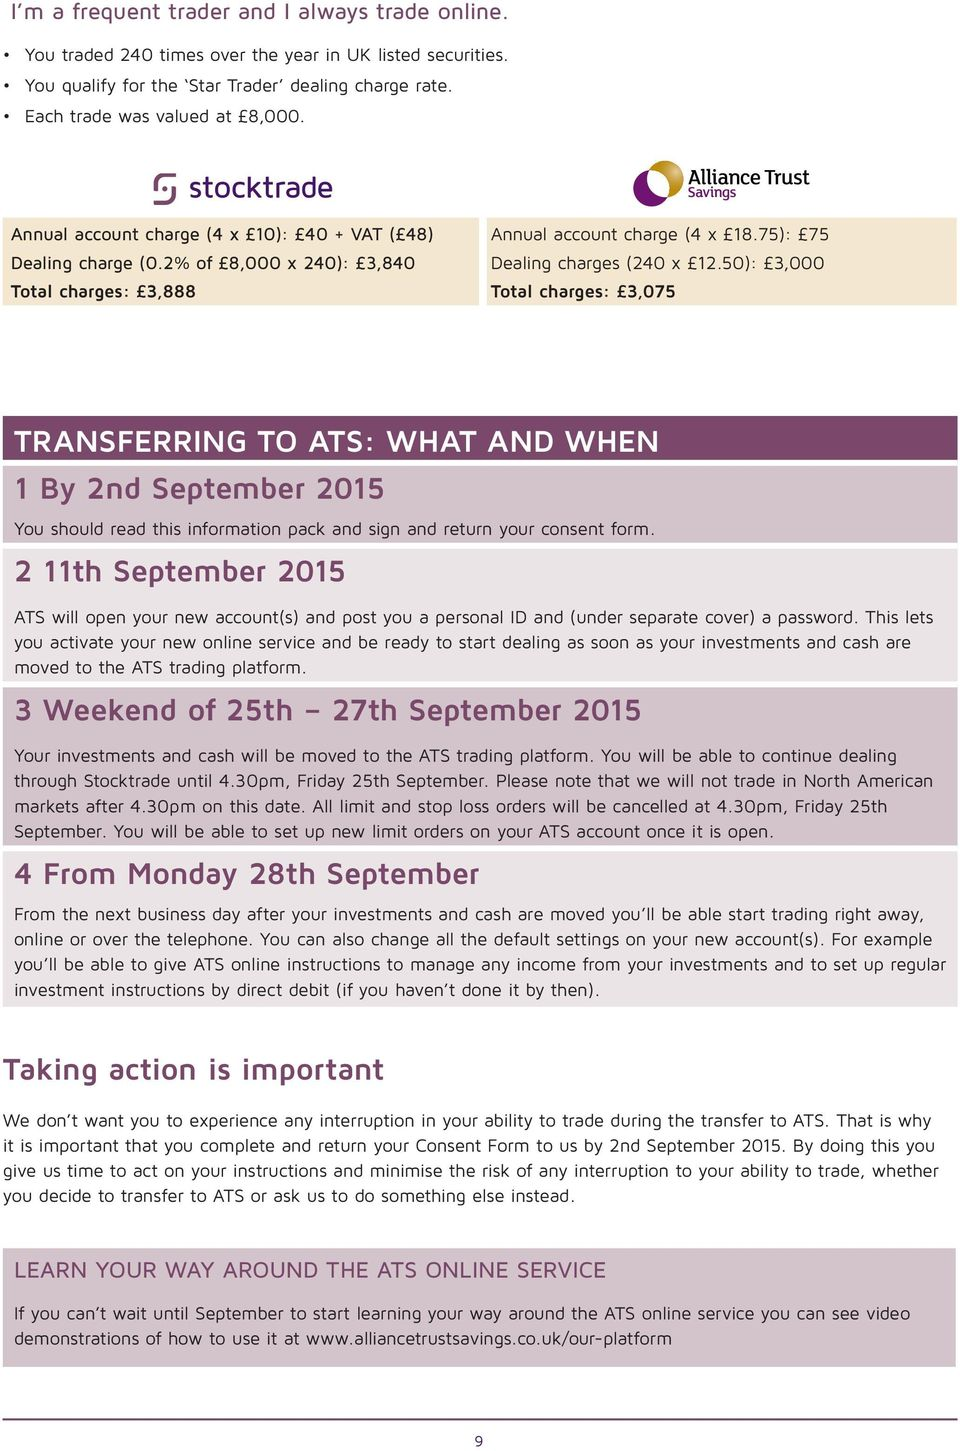 50): 3,000 Total charges: 3,075 TRANSFERRING TO ATS: WHAT AND WHEN 1 By 2nd September 2015 You should read this information pack and sign and return your consent form.